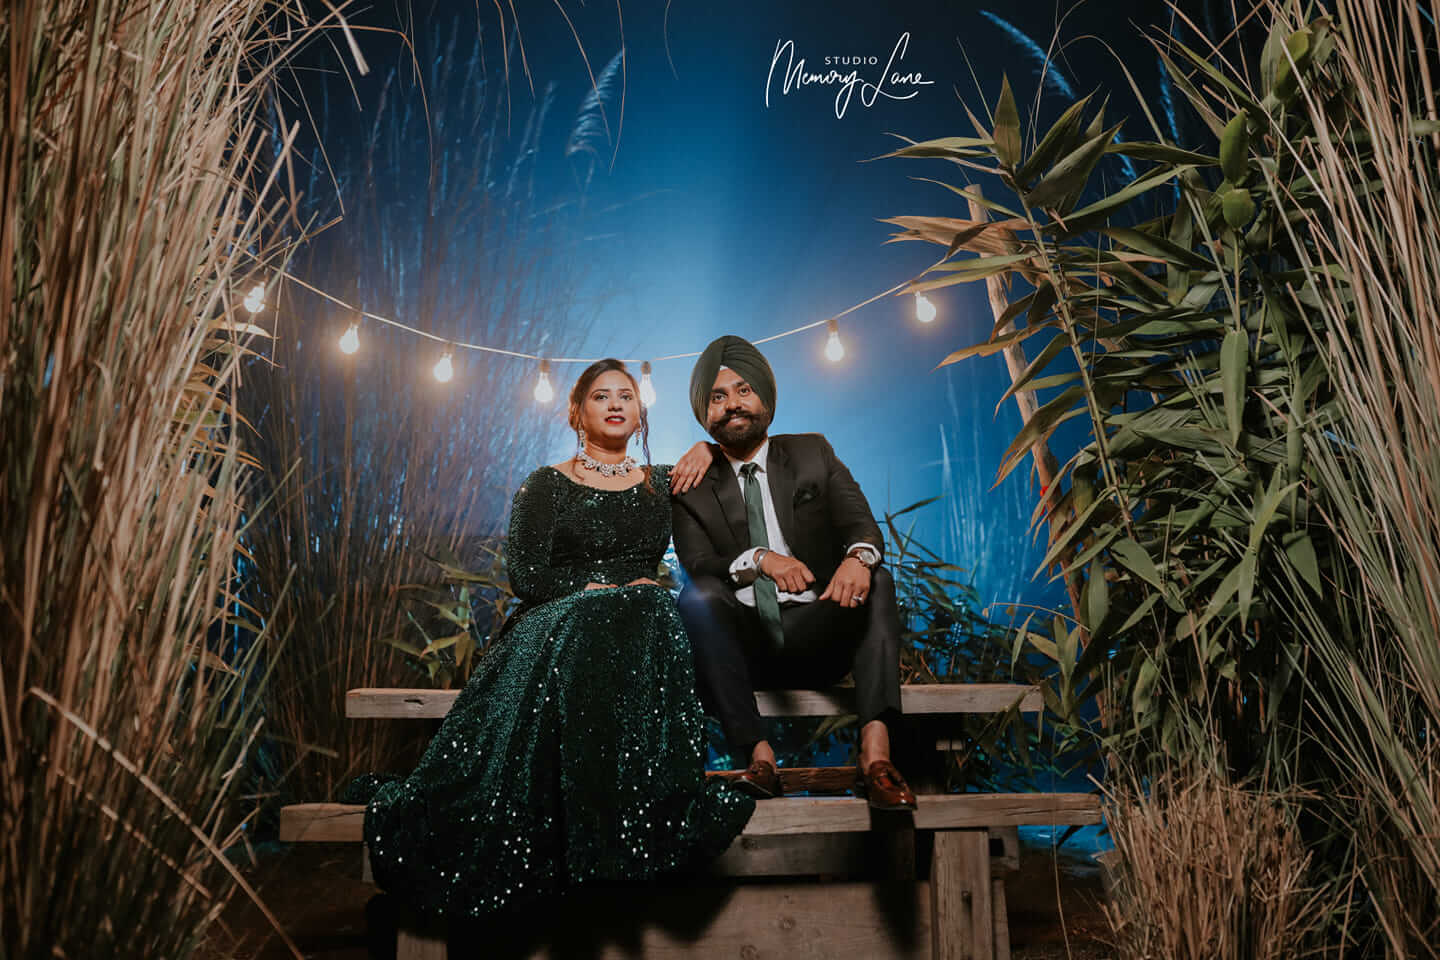 Outdoor wedding shoot in chandigarh